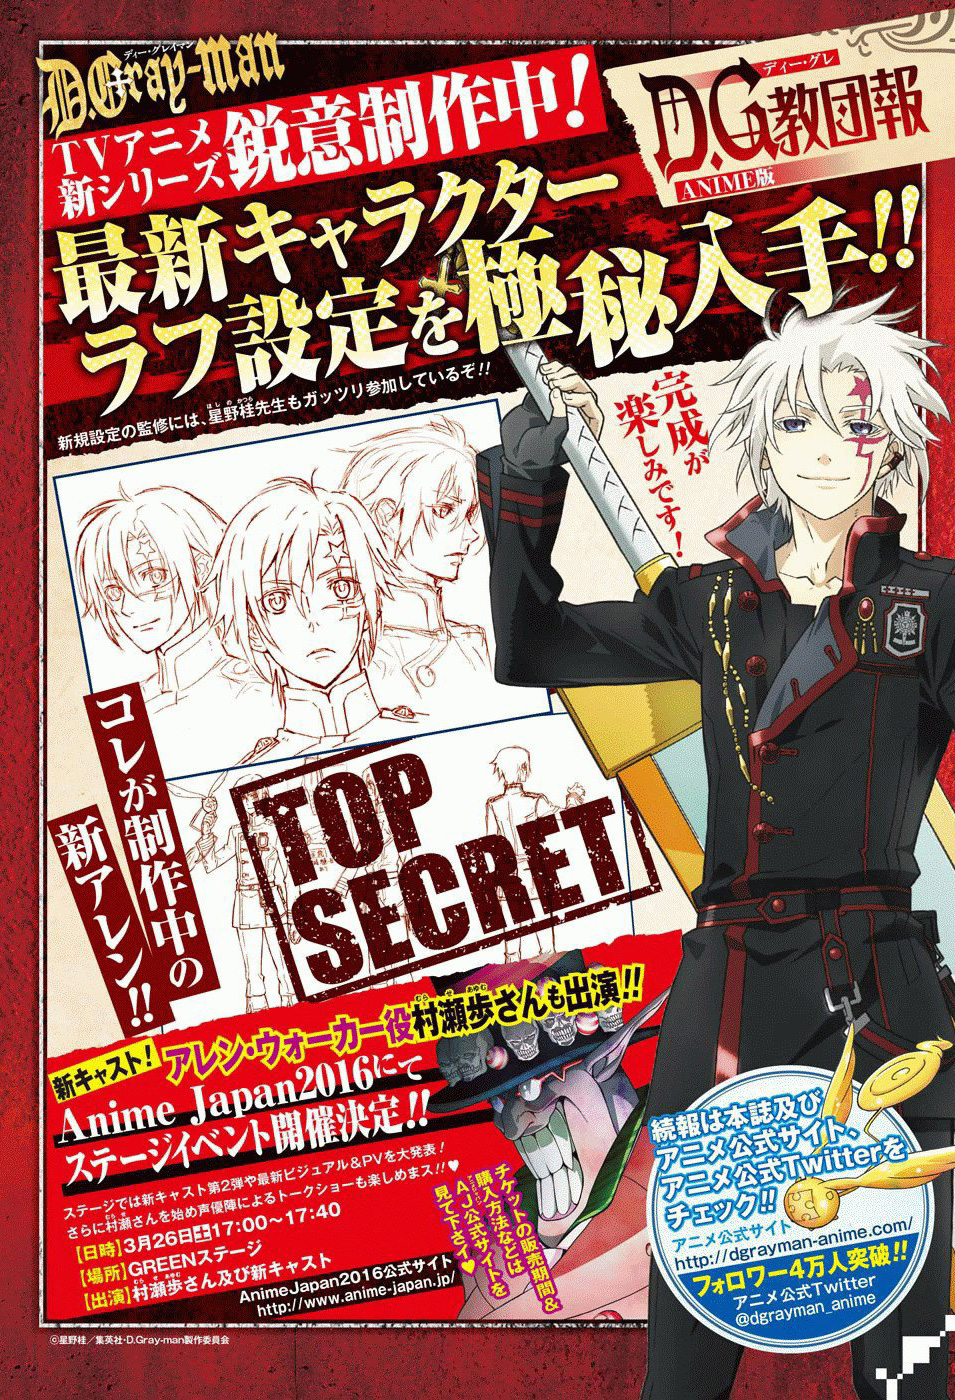 2016-D.Gray-man-Anime-Allen-Walker-Character-Design-Preview